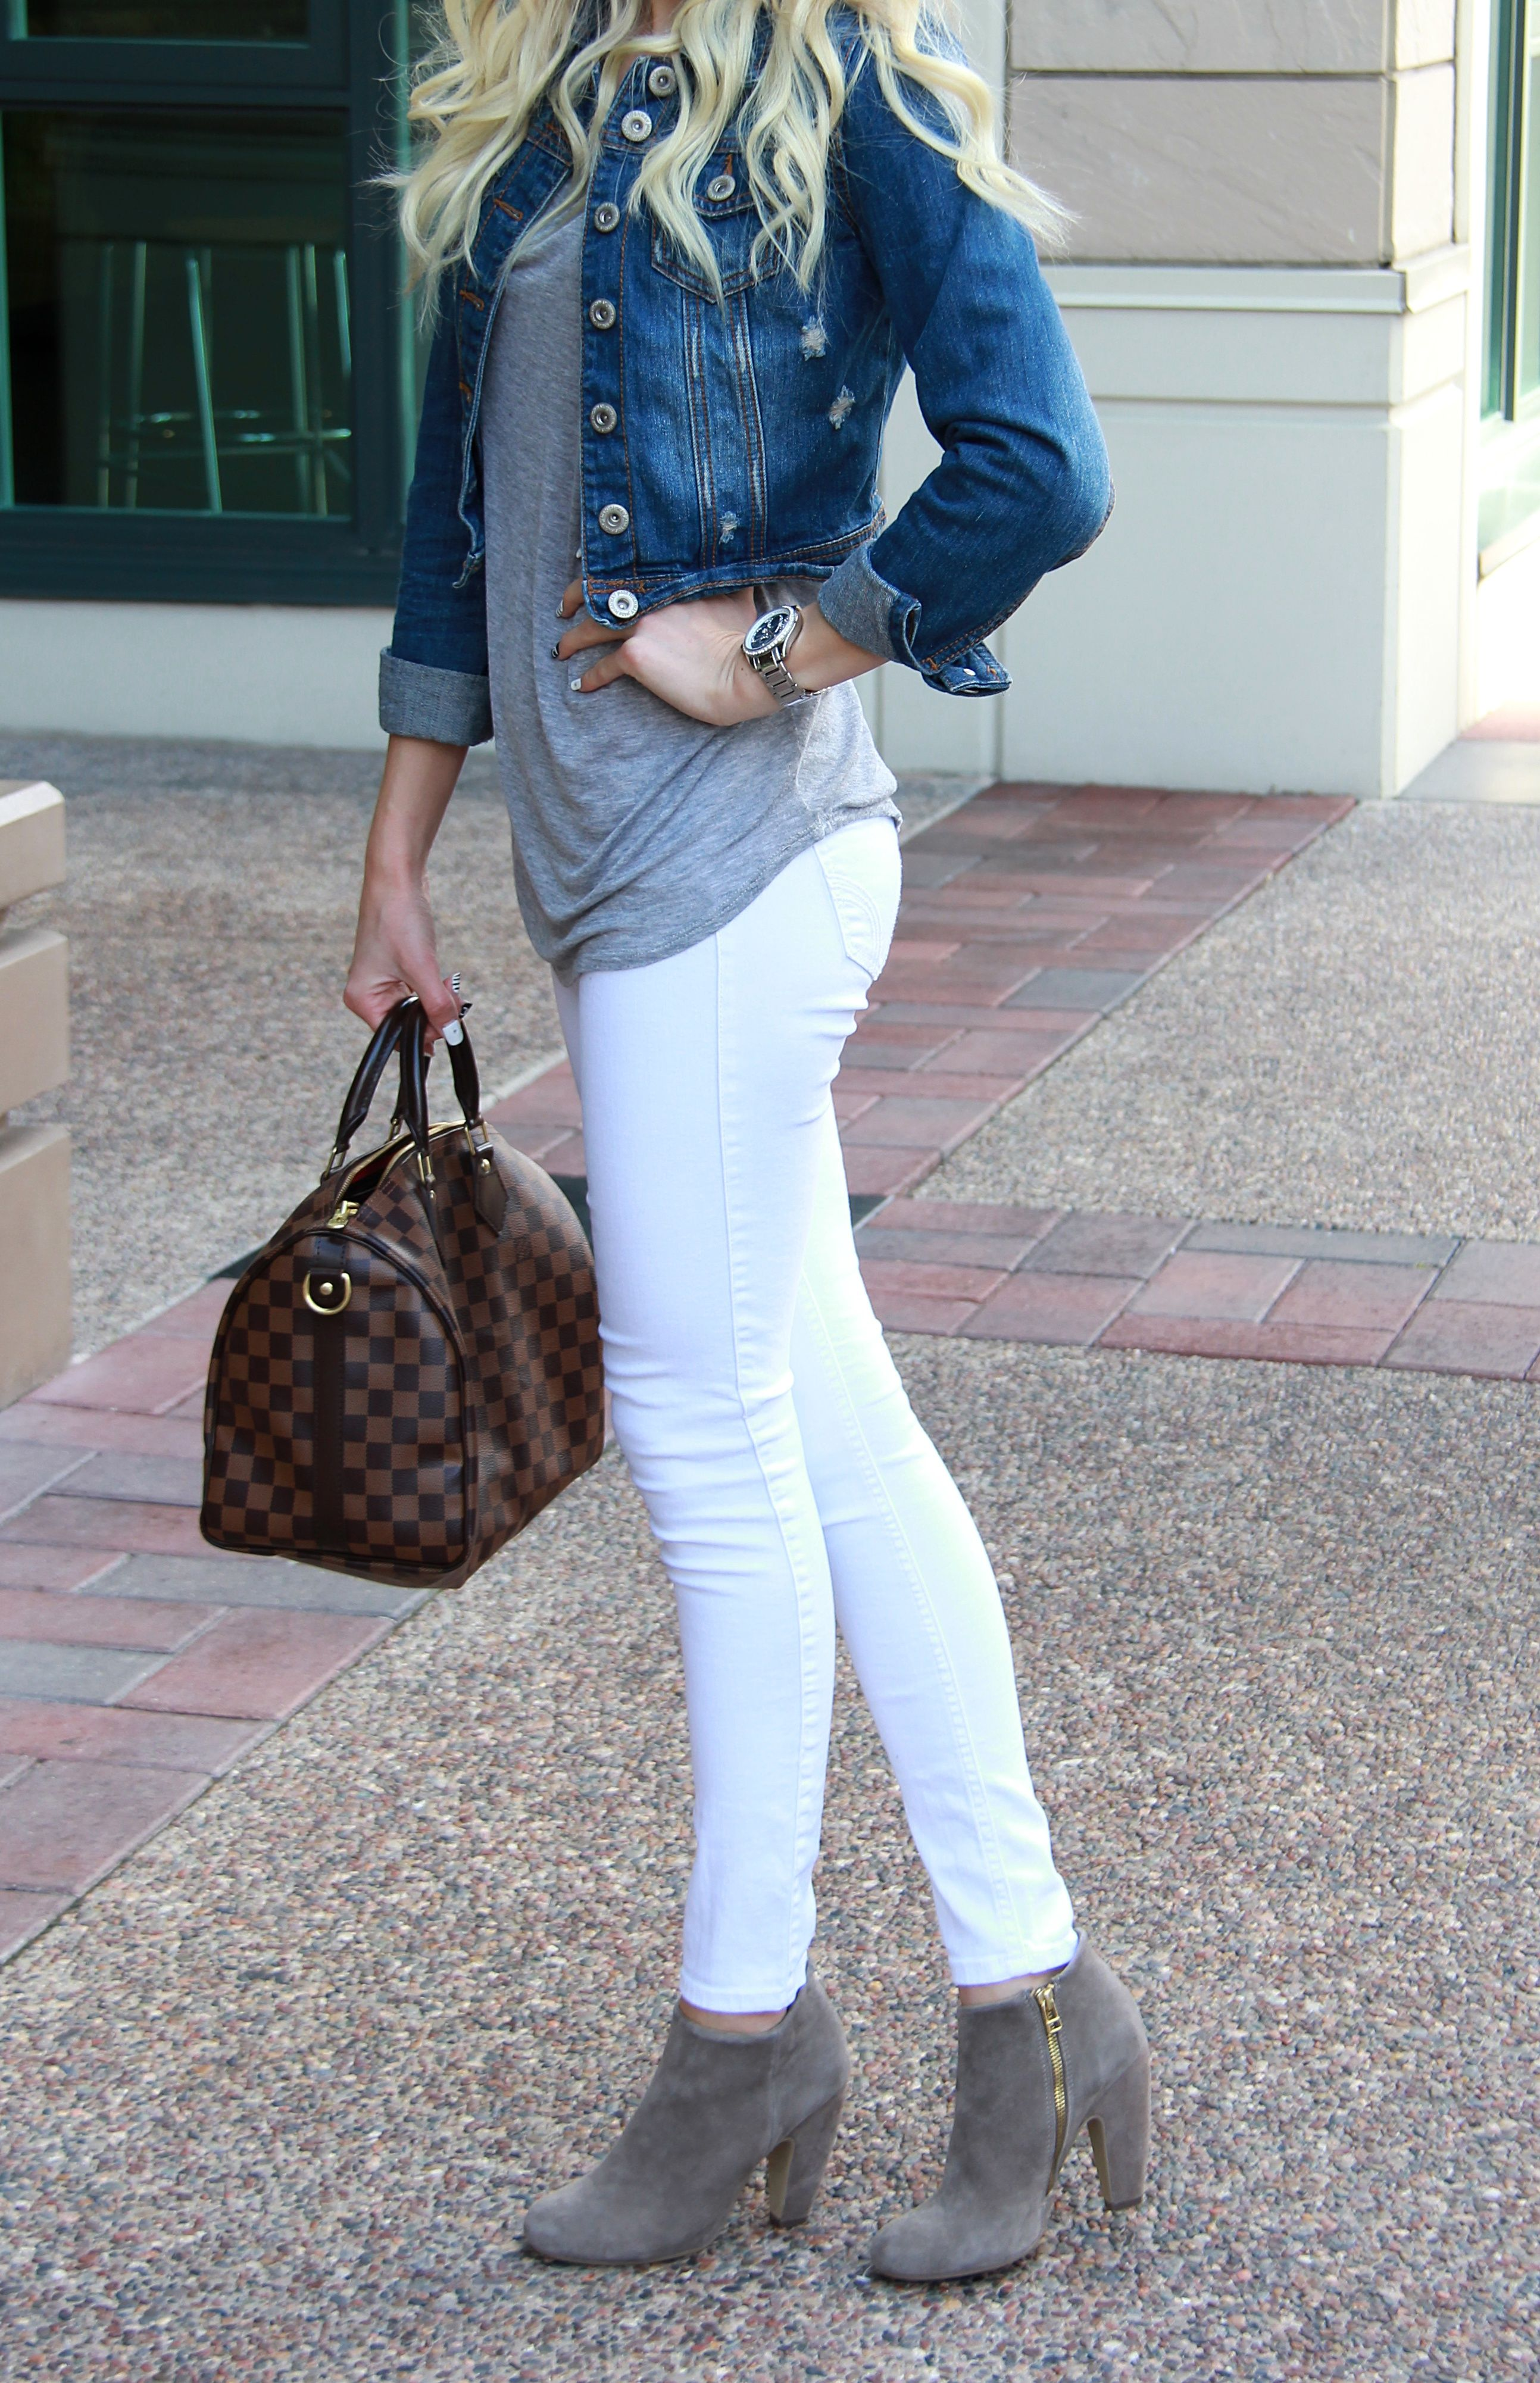 4b12f453e5052b those grey booties though; Jean Jacket + White Jeans + Grey Booties ...